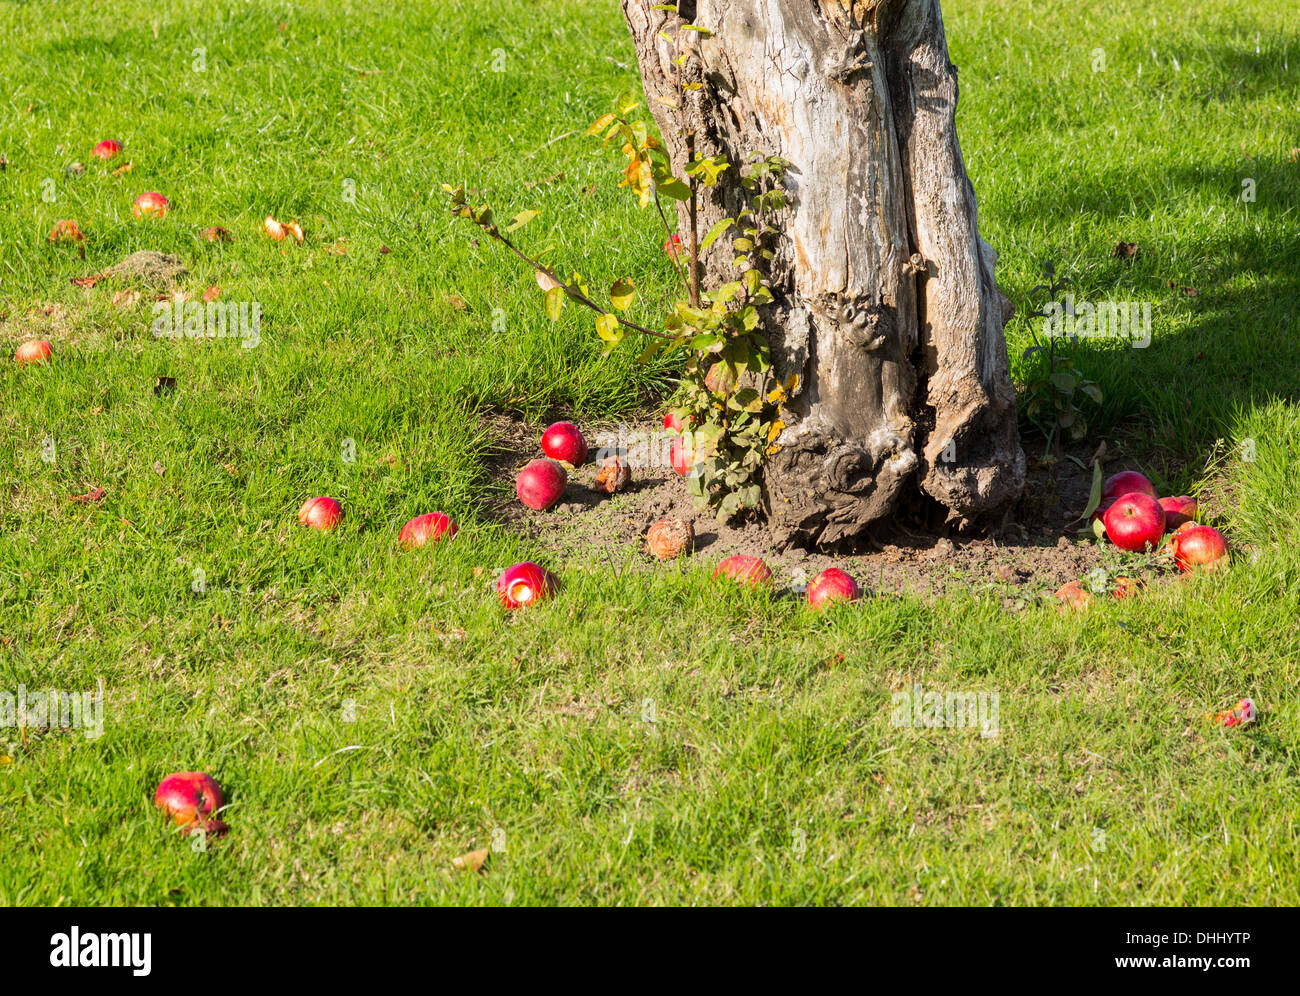 Fallen apples from an apple tree in an orchard - Stock Image